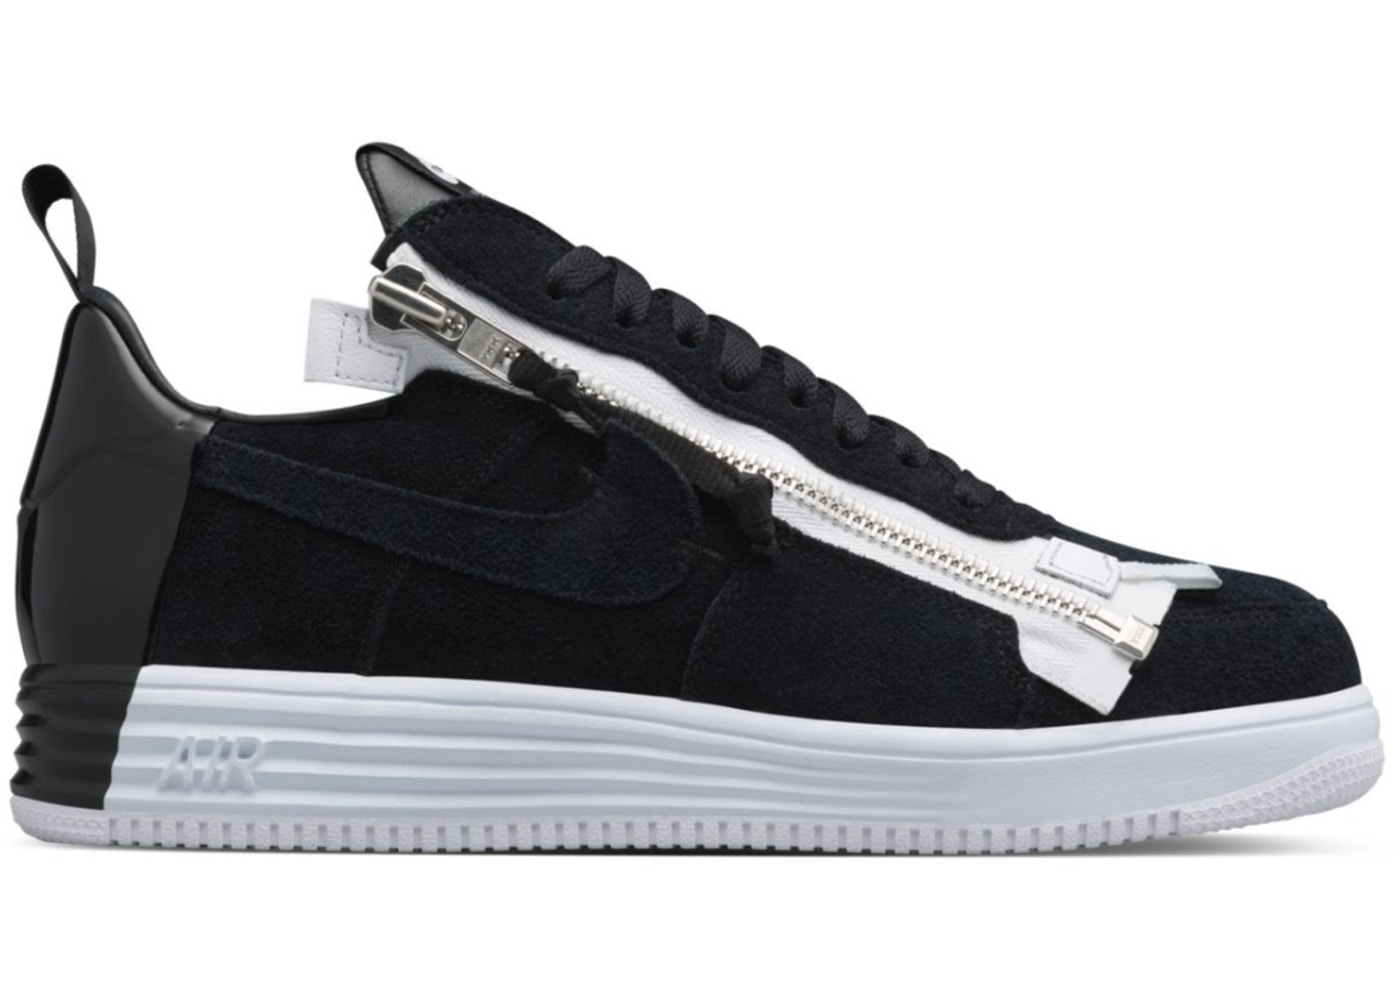 detailed look 7e4da 9f869 Lunar Force 1 Low Acronym Black White - 698699-001